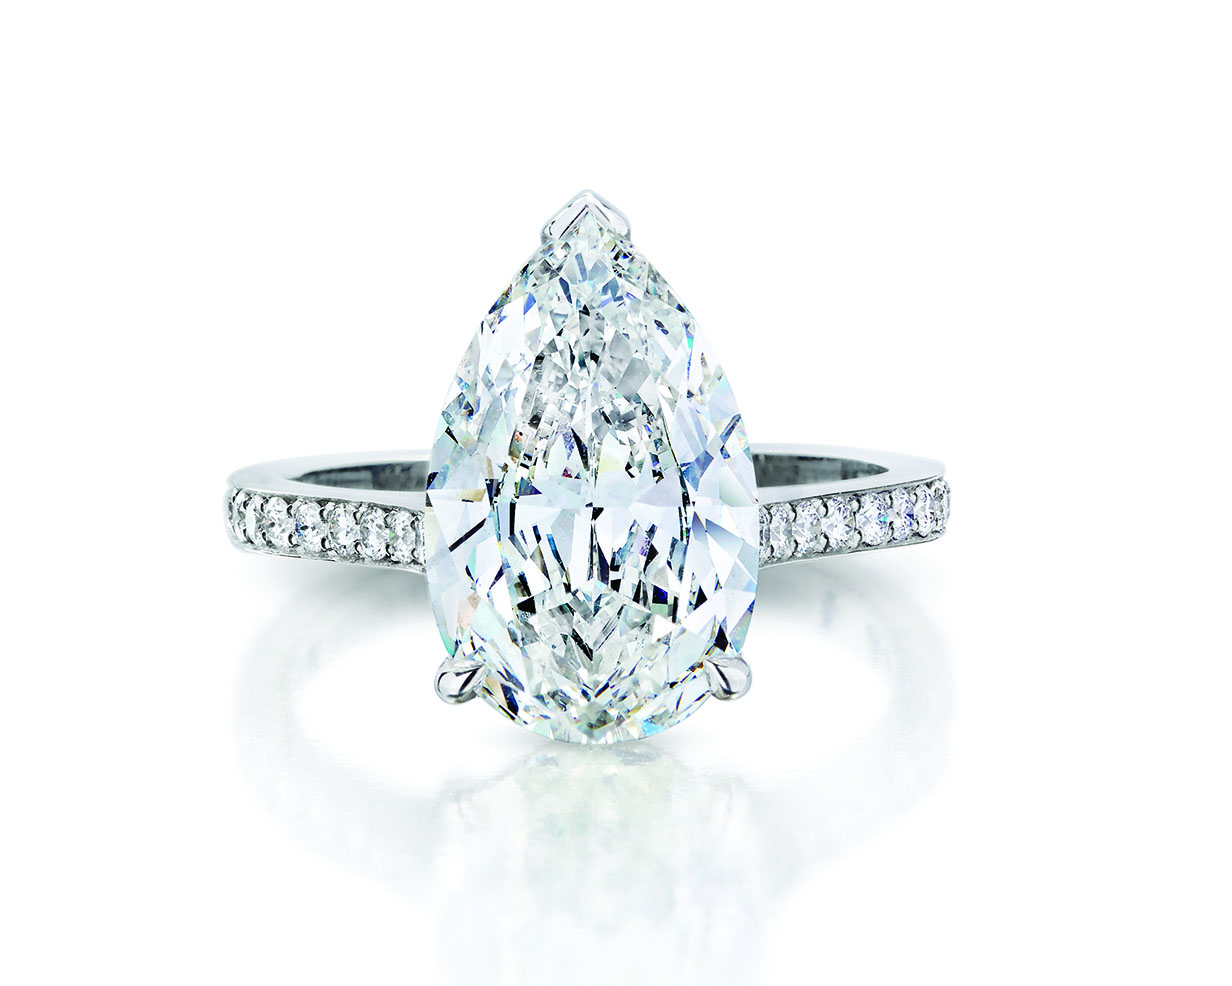 Pear cut diamond engagement ring with platinum pave band